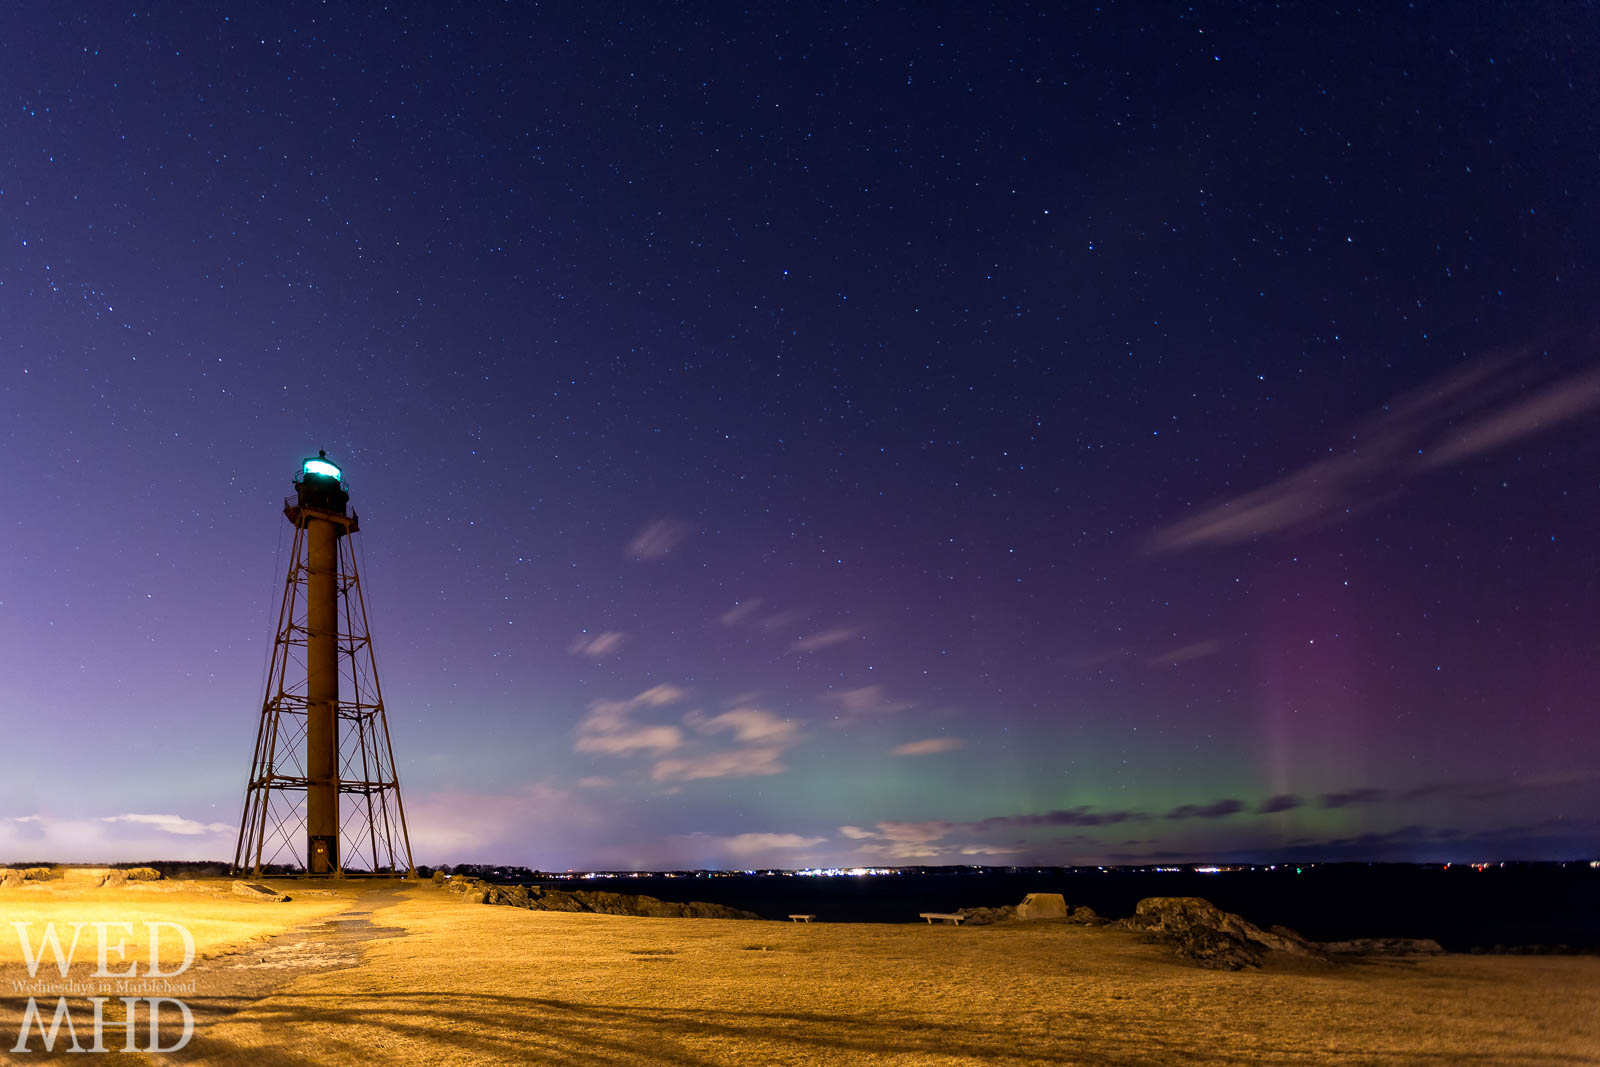 The aurora borealis (northern lights) shine green and purple in this image from Marblehead Light